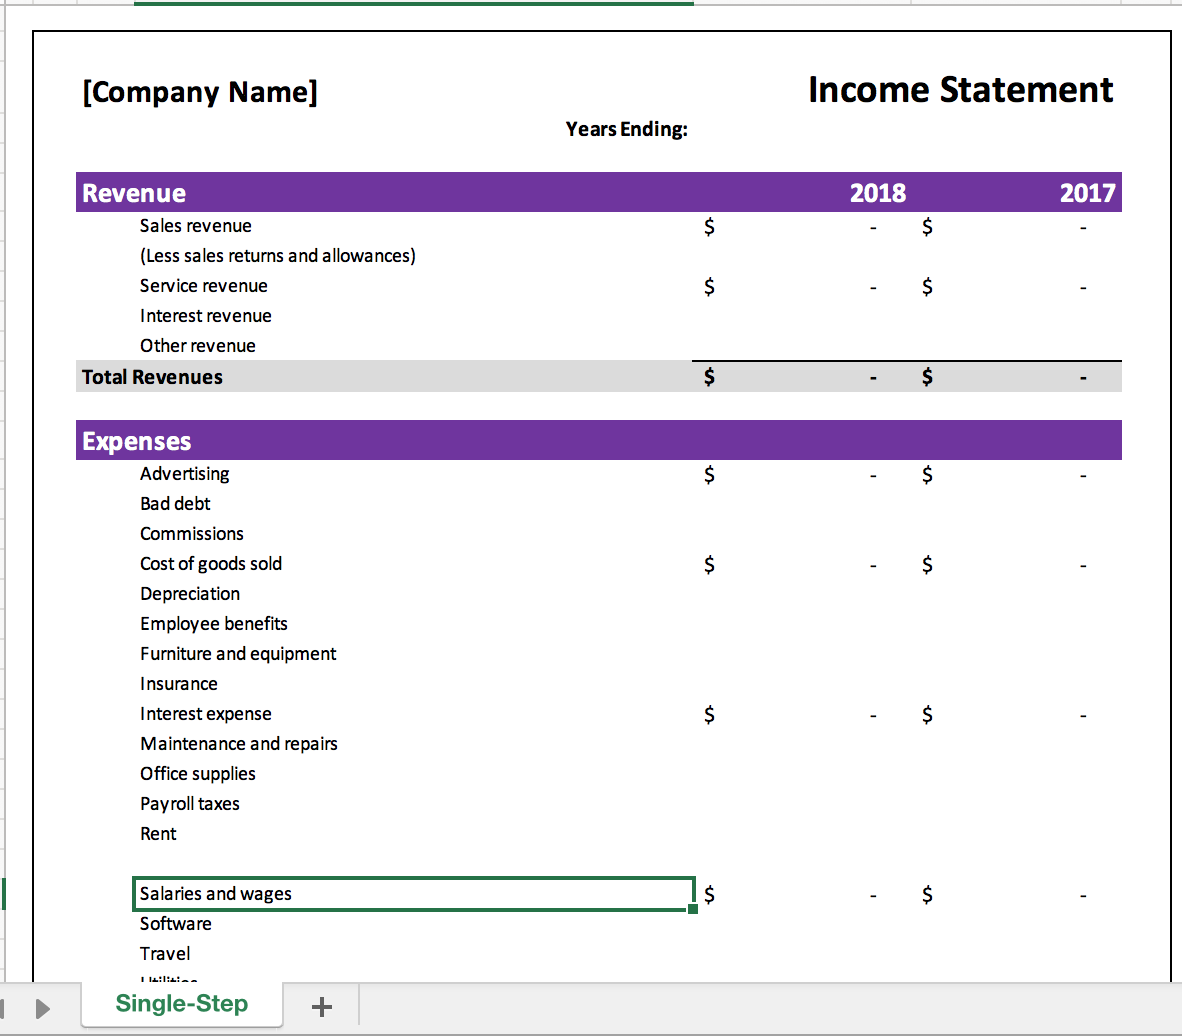 Income Statement.png